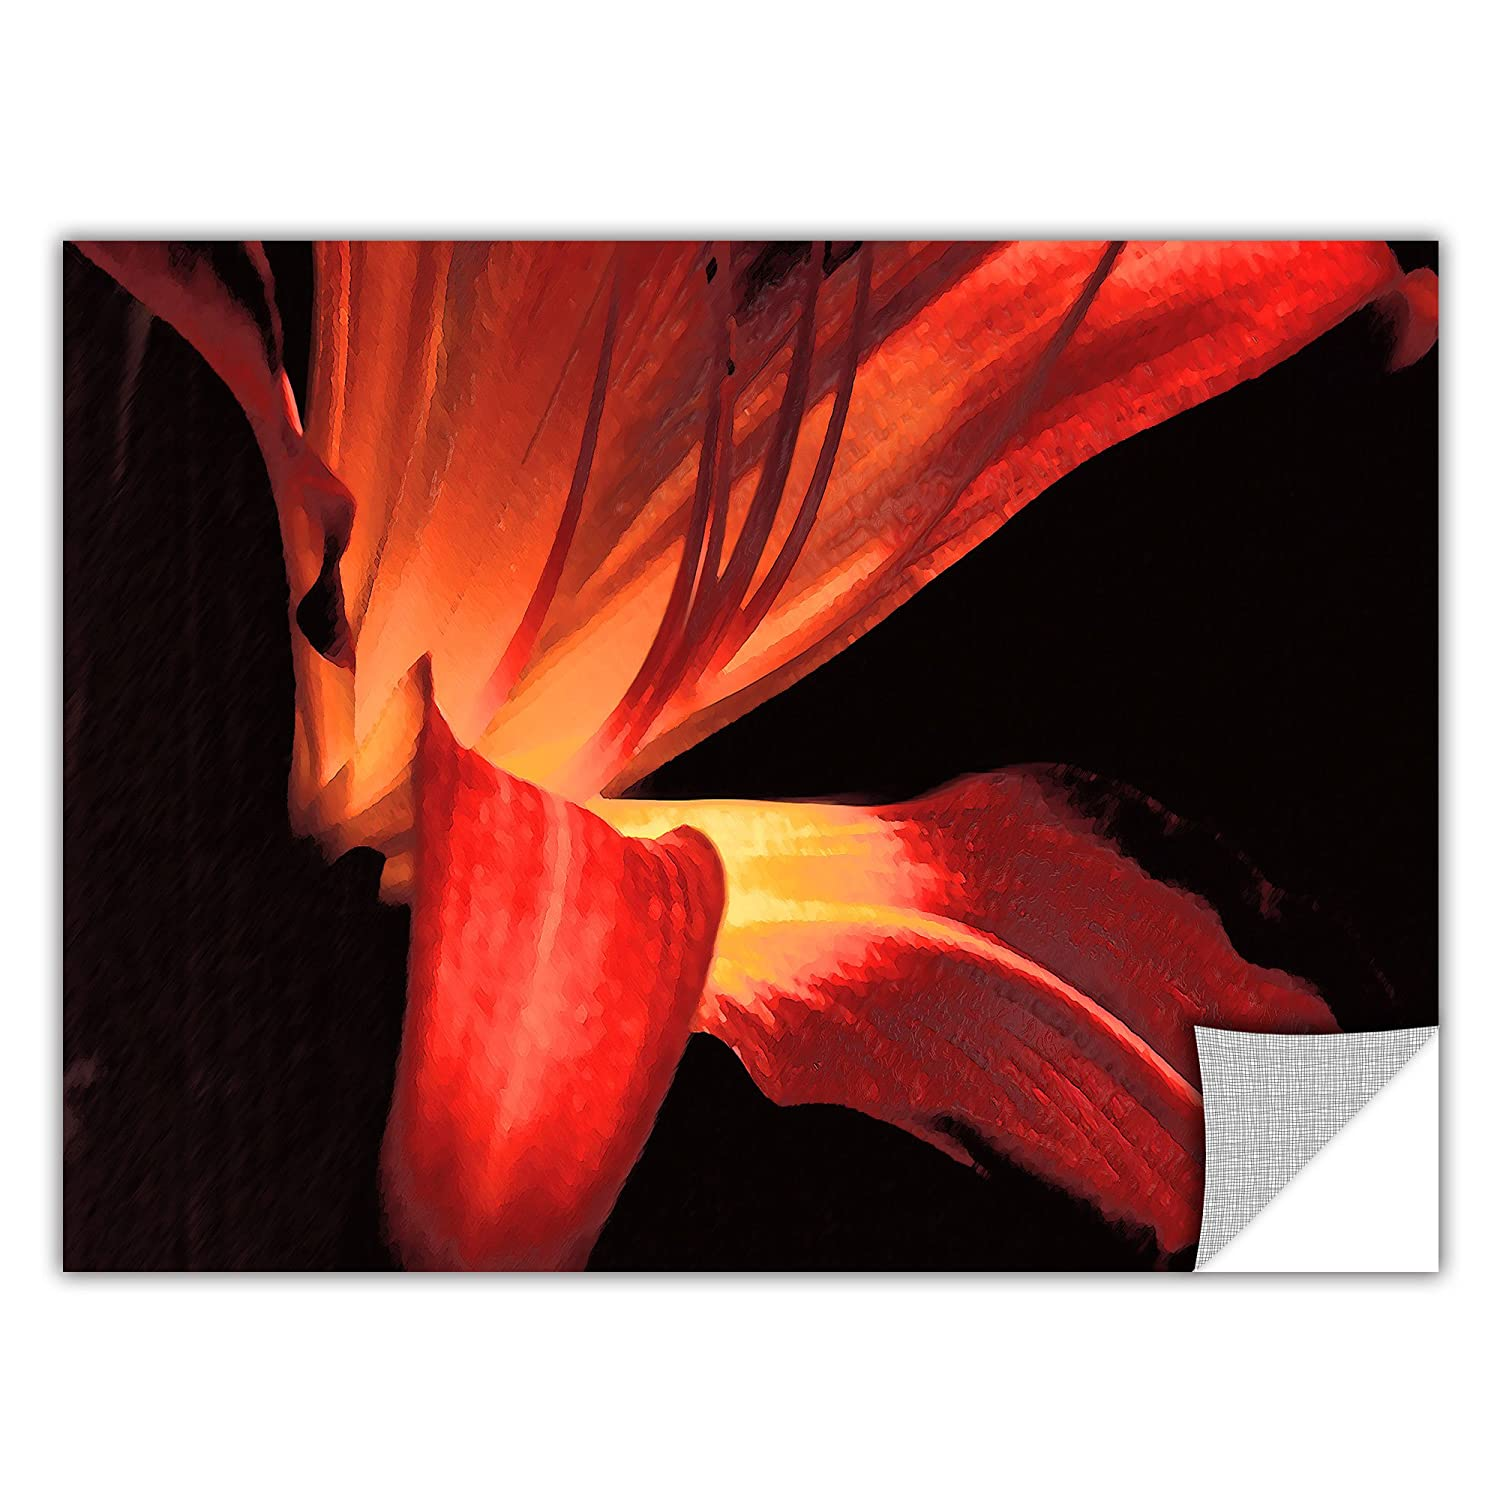 ArtWall 0uhl149a1824p Appealz Dean Uhlinger Blossom Glow Removable Graphic Wall Art 18 by 24-Inch